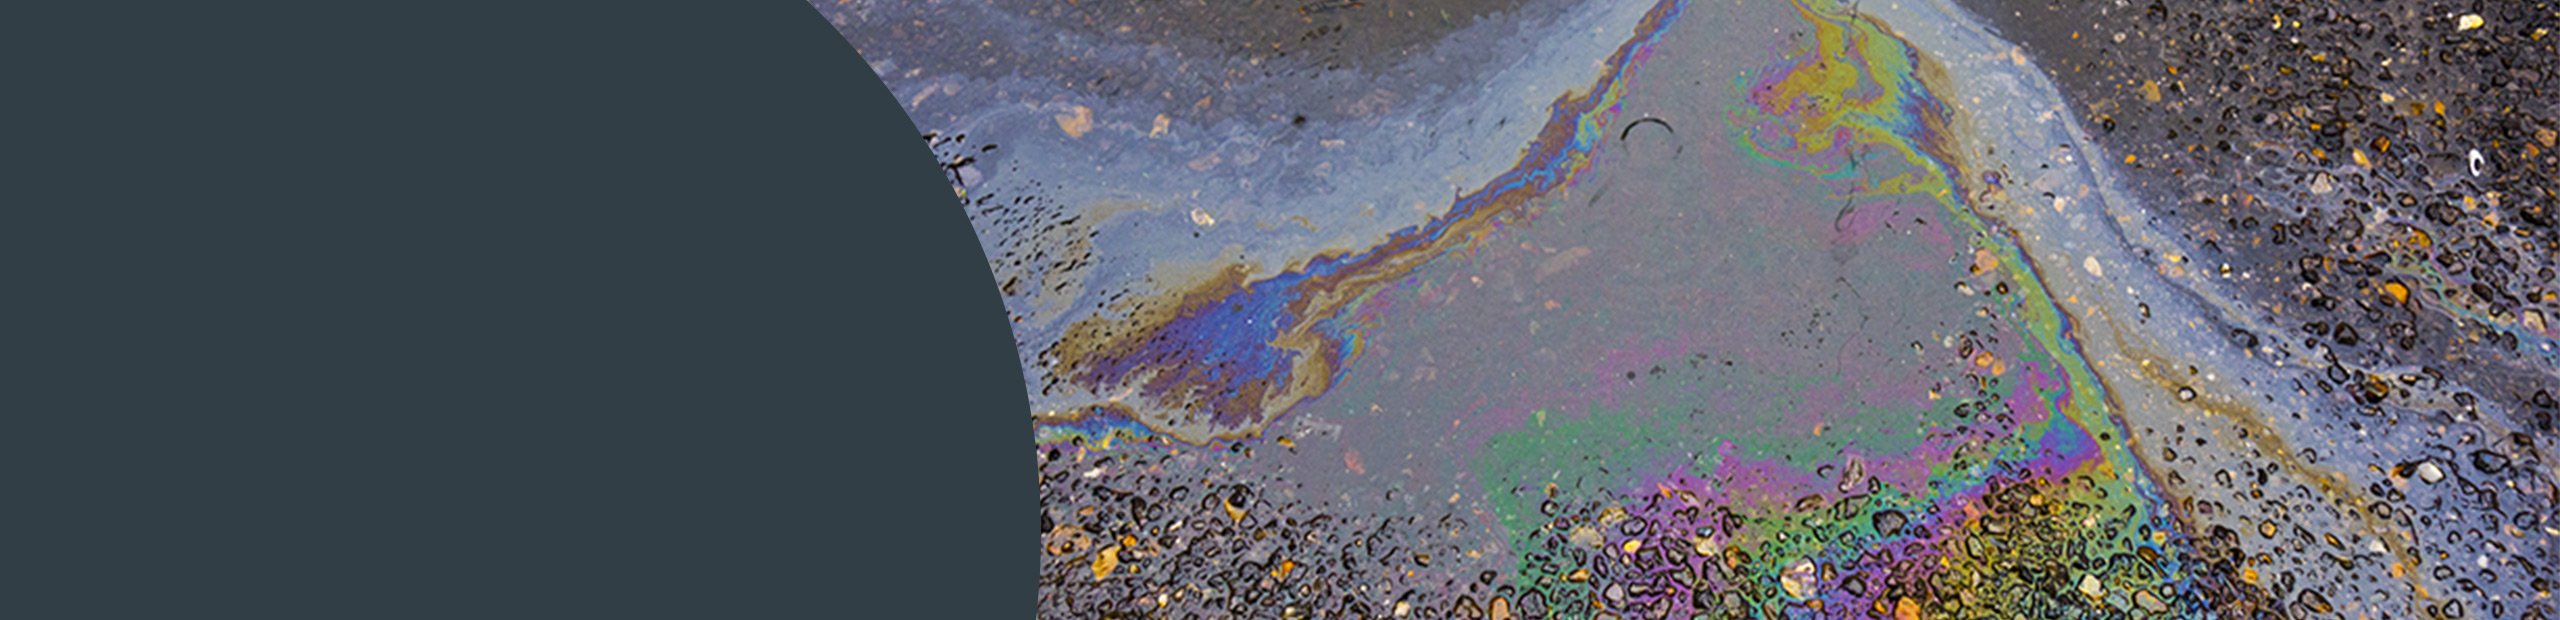 Gasoline Oil Spill Cleaning